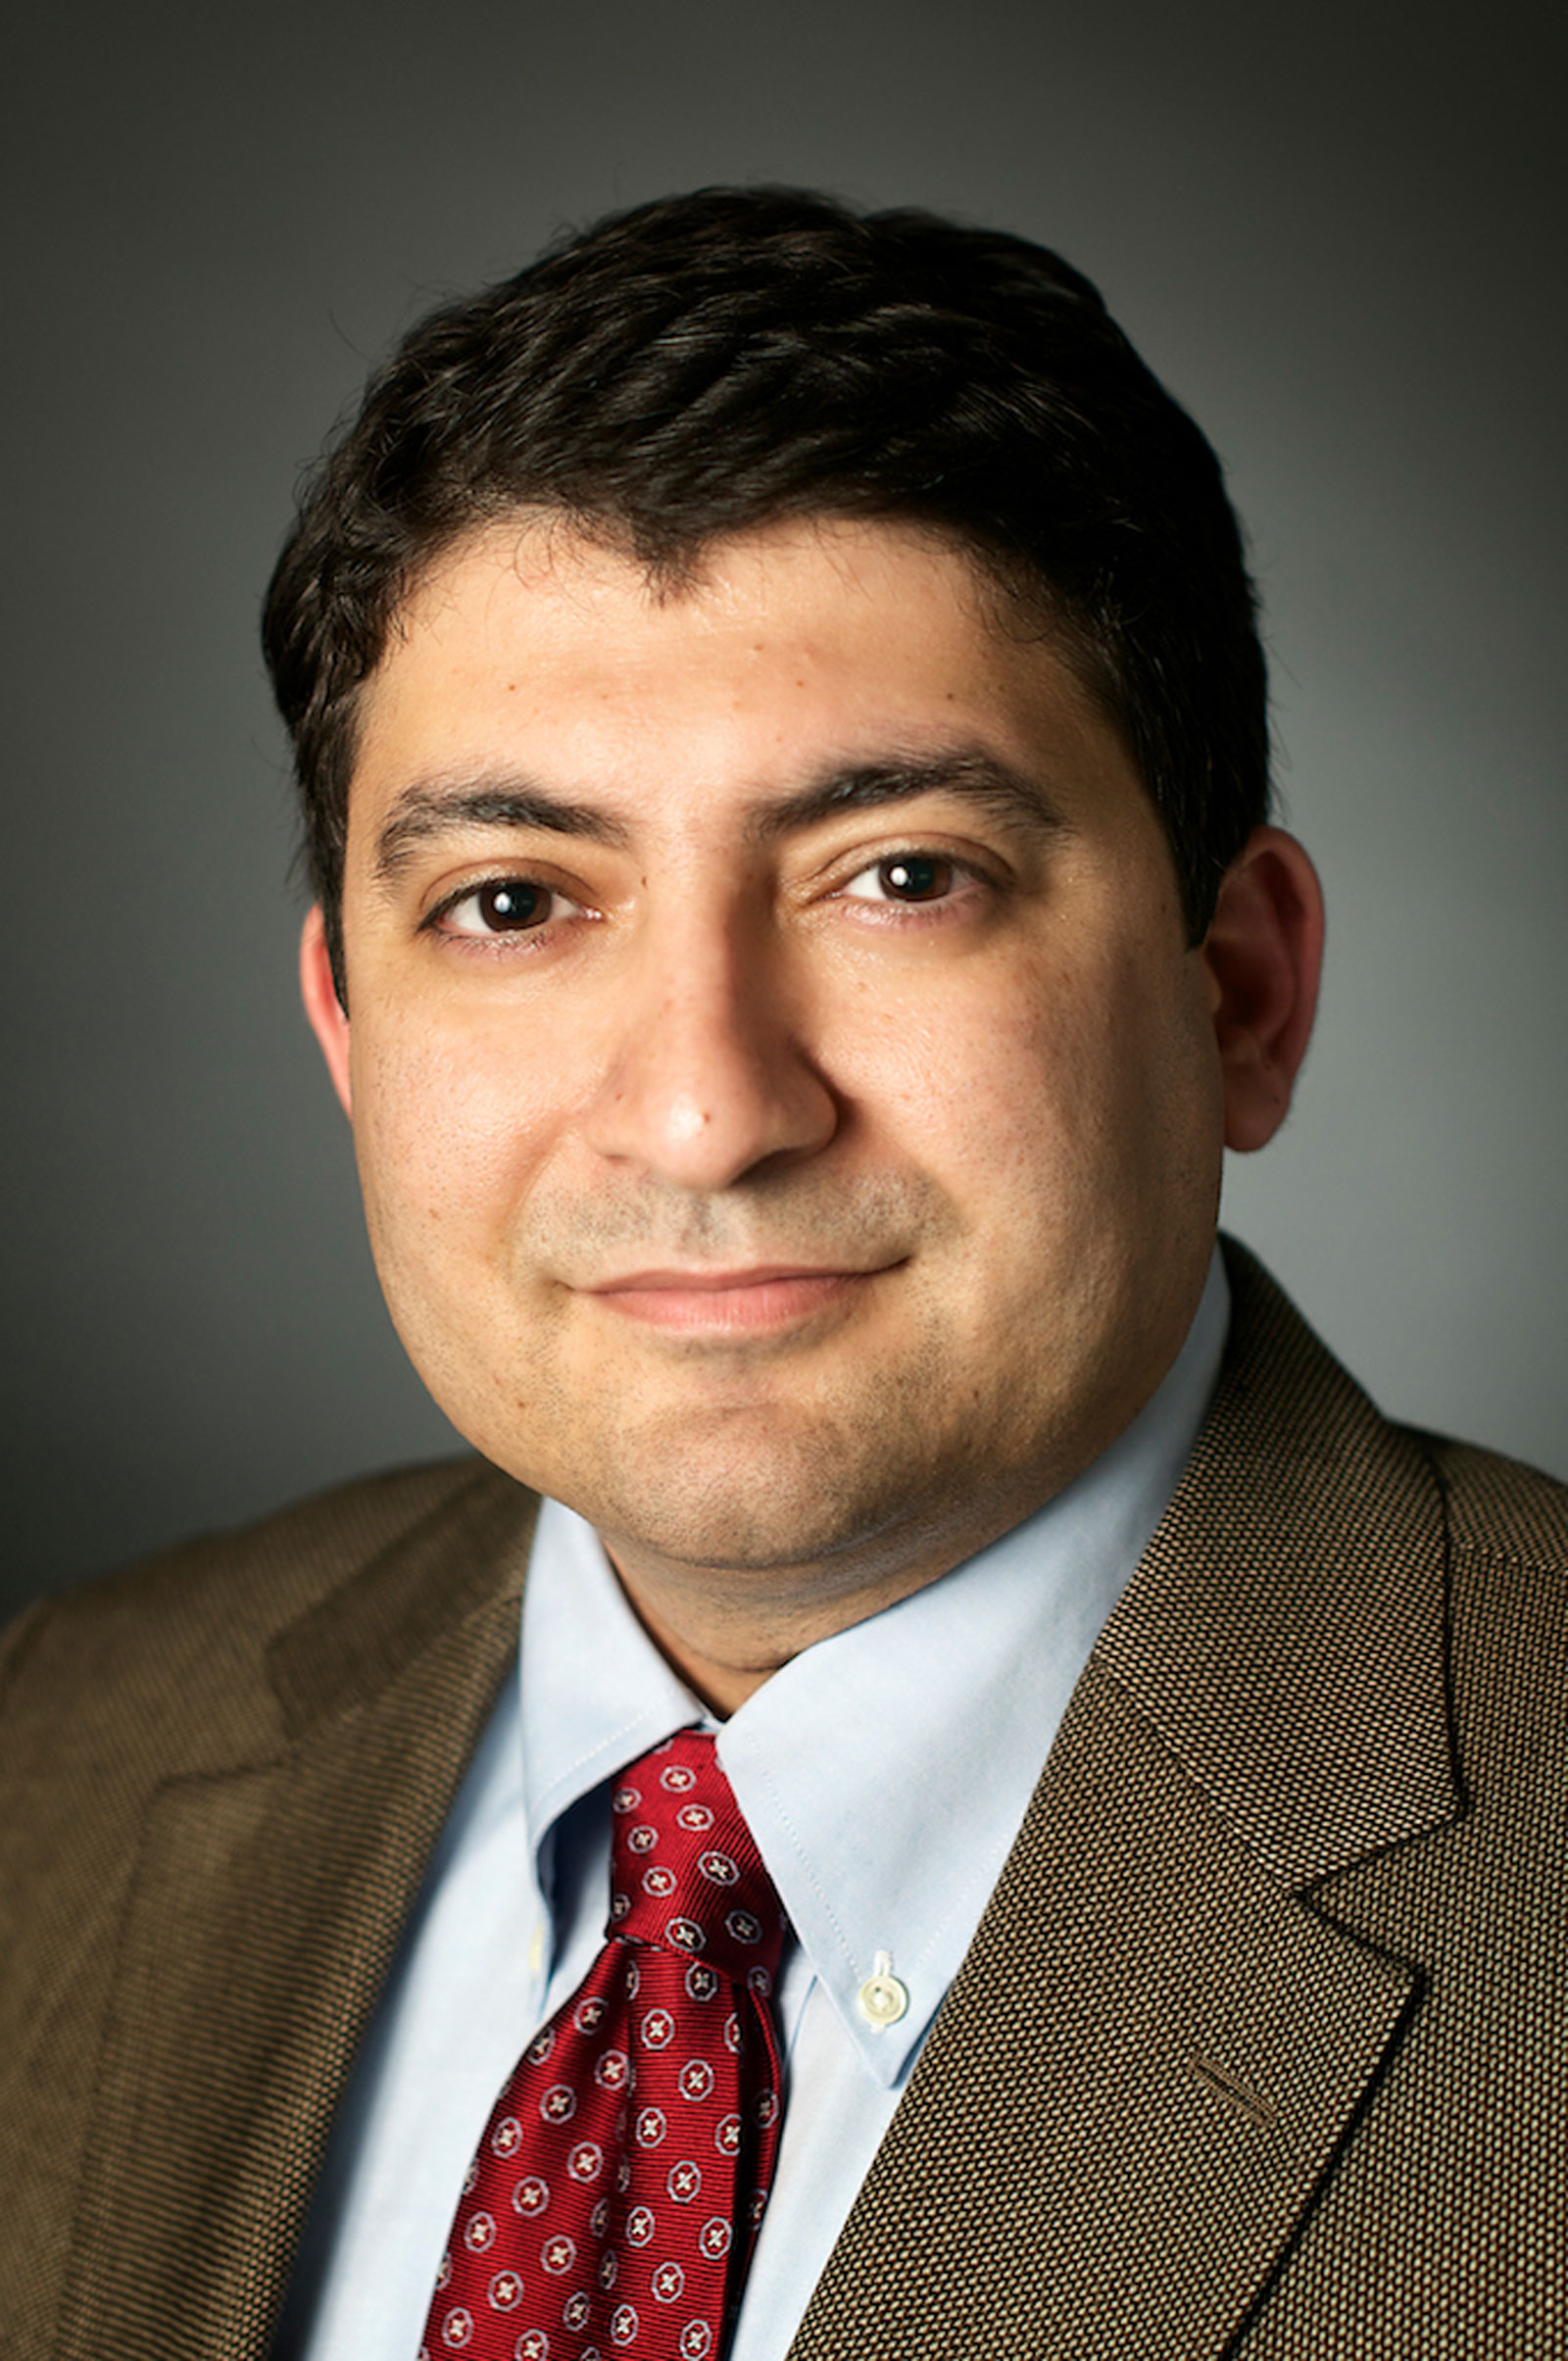 Amir Zarrinpar, Ph.D., M.D.